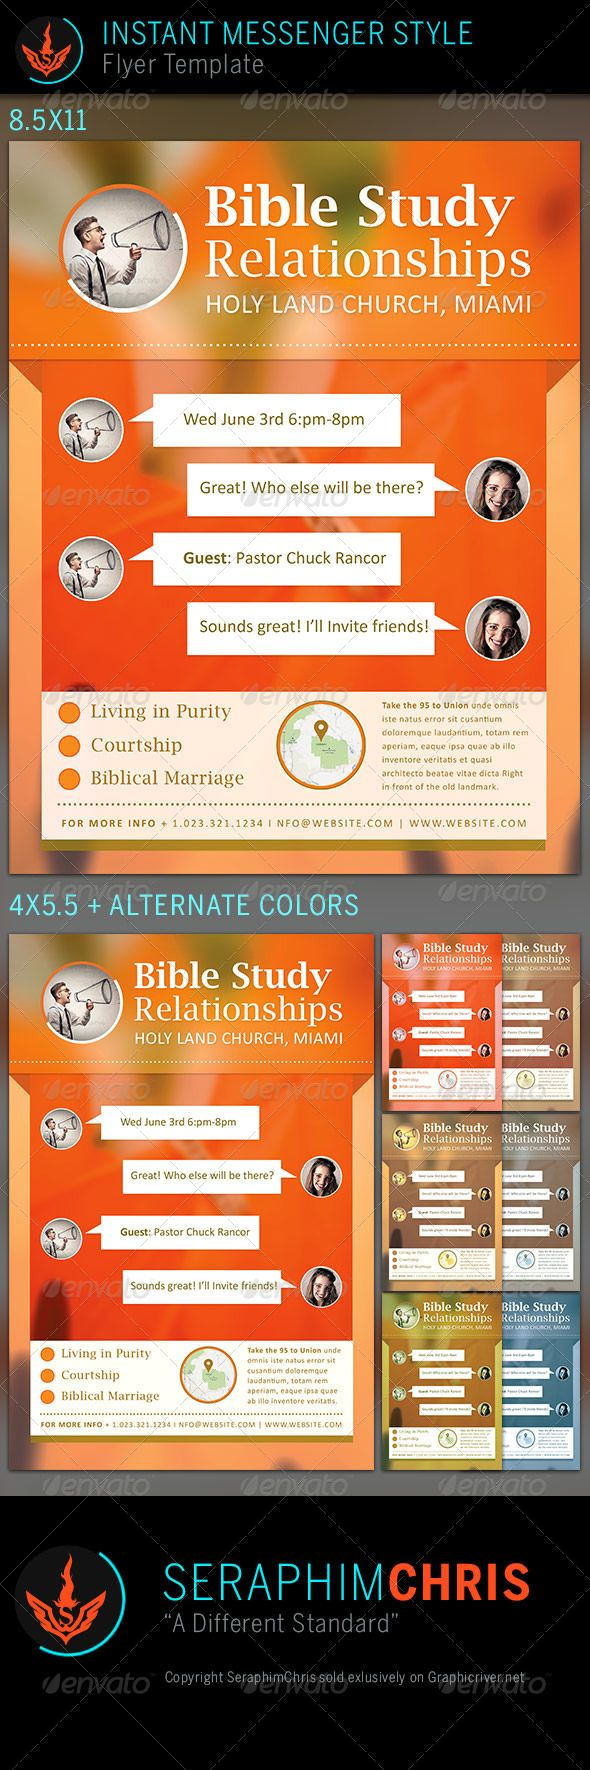 research study flyer template - 71 best images about charity flyer templates on pinterest